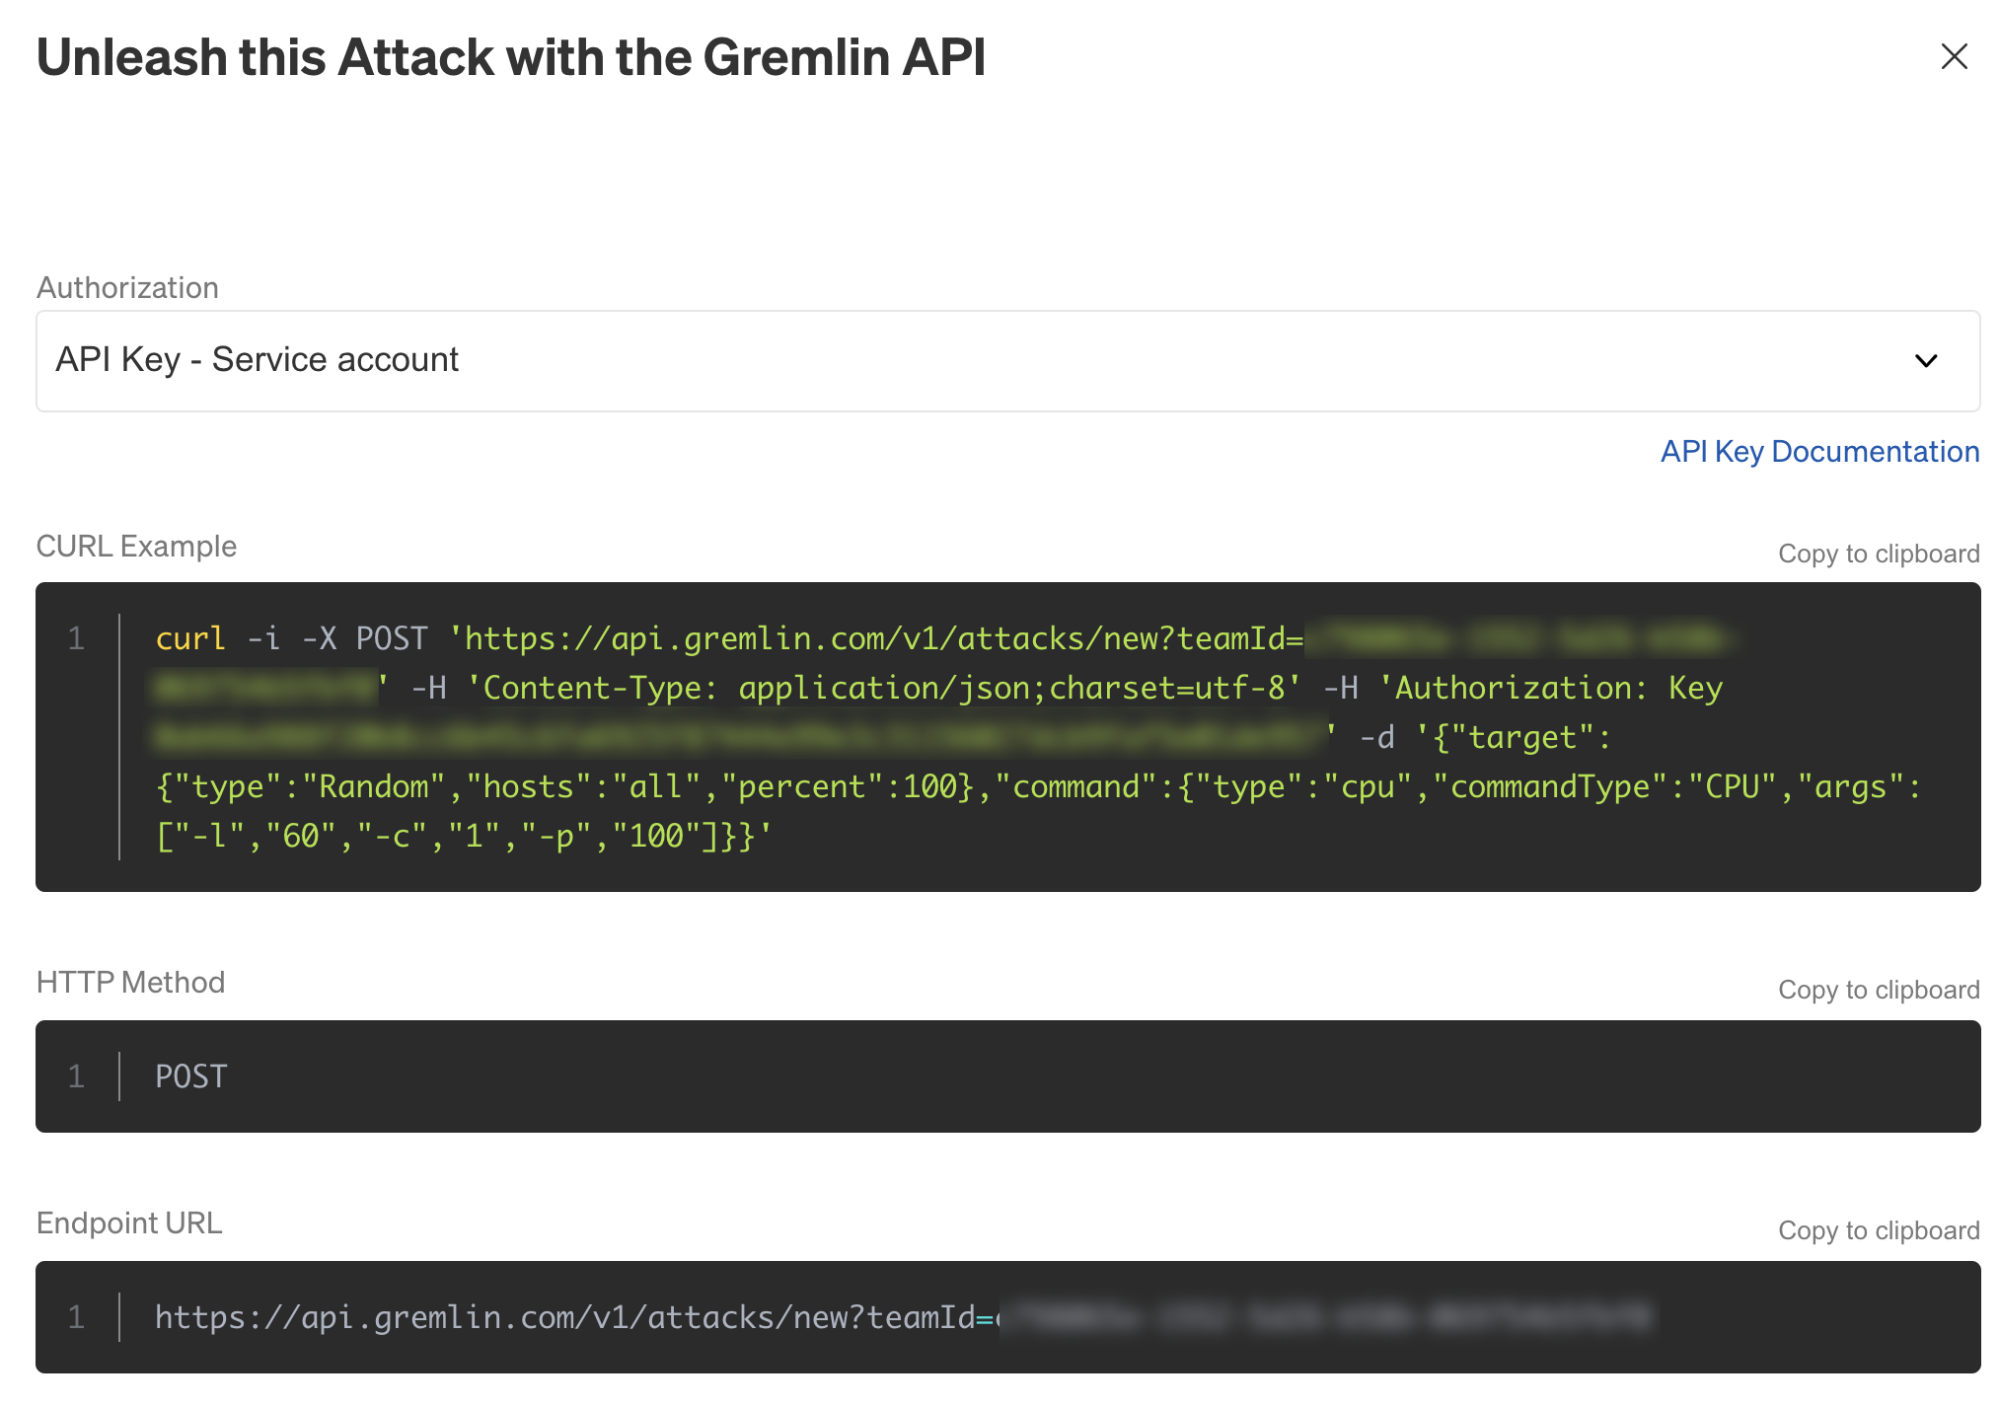 Viewing a formatted curl command in the Gremlin web app